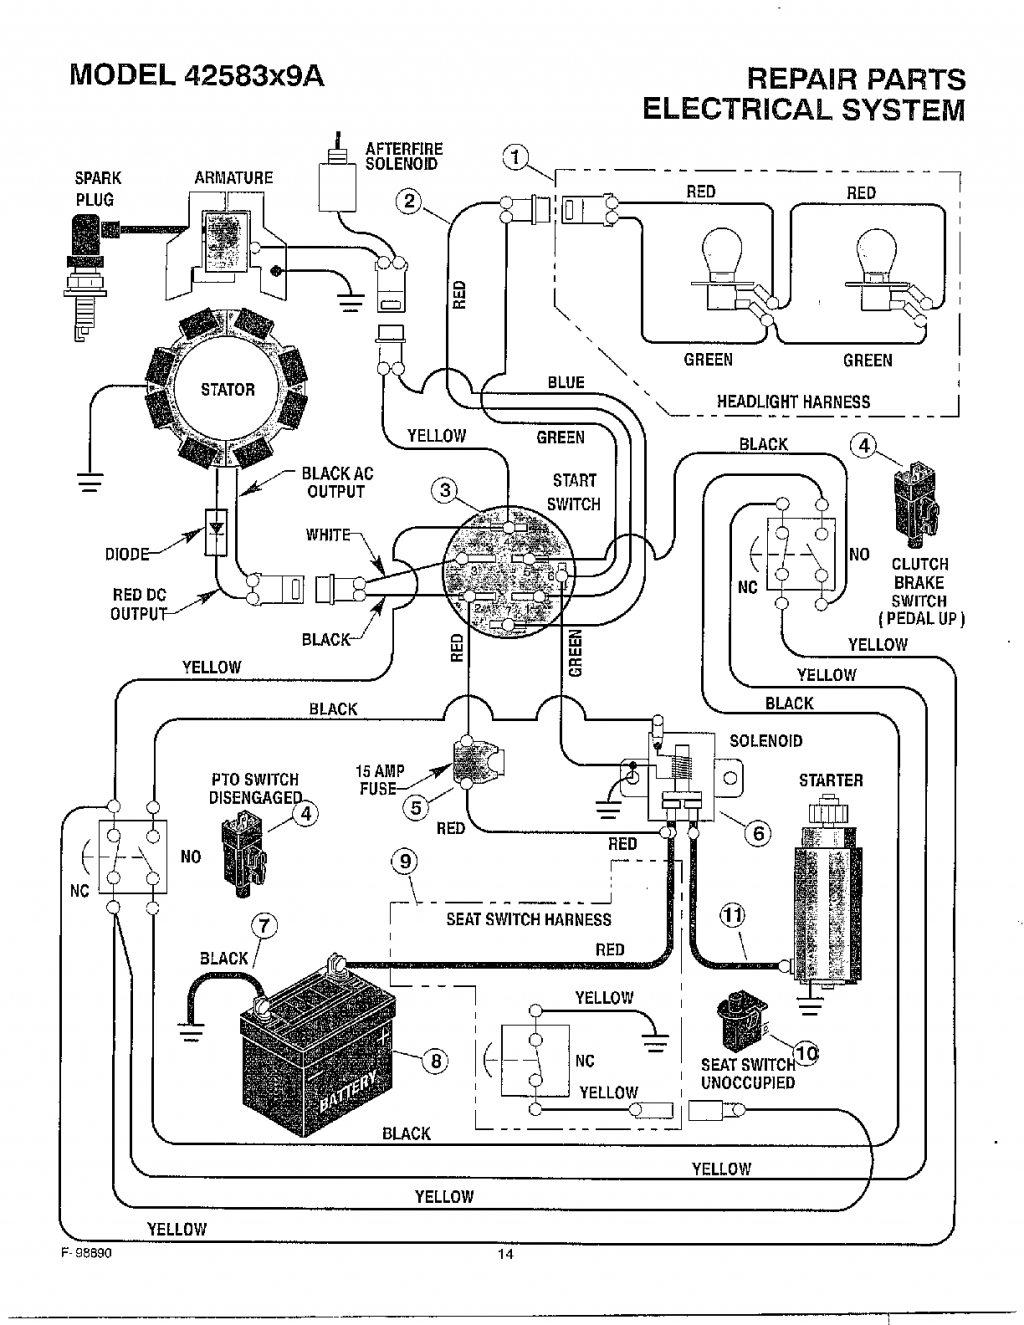 2010 Wiring Murray Diagram 46104x8b - Data Wiring Diagrams on solenoid switch diagram, winch solenoid diagram, battery isolation solenoid wiring diagram, 3 post starter solenoid, 12 volt solenoid wiring diagram, basic ford solenoid wiring diagram, volvo penta tilt trim diagram, relay diagram, cummins fuel shut off solenoid wiring diagram, solenoid valve wiring diagram, 4 post solenoid diagram, warn solenoid wiring diagram, 1979 ford solenoid wiring diagram,